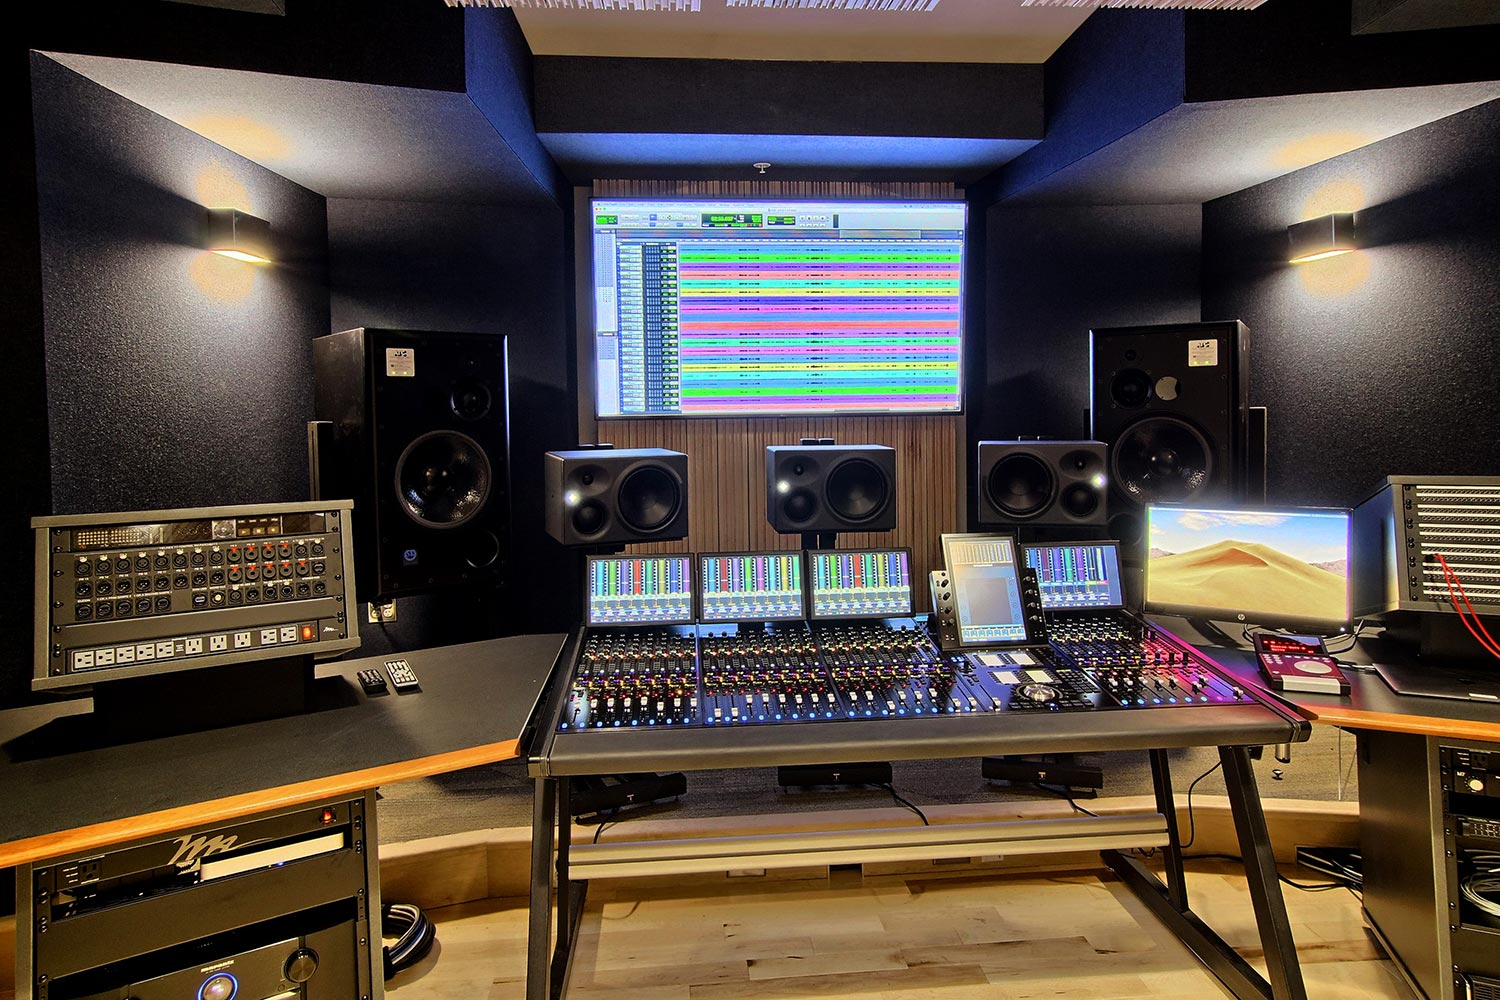 Interlochen has recently completed their new complex. A key component of the new complex is a state-of-the-art recording/teaching studio complex developed by WSDG. Second Floor Studio 2.